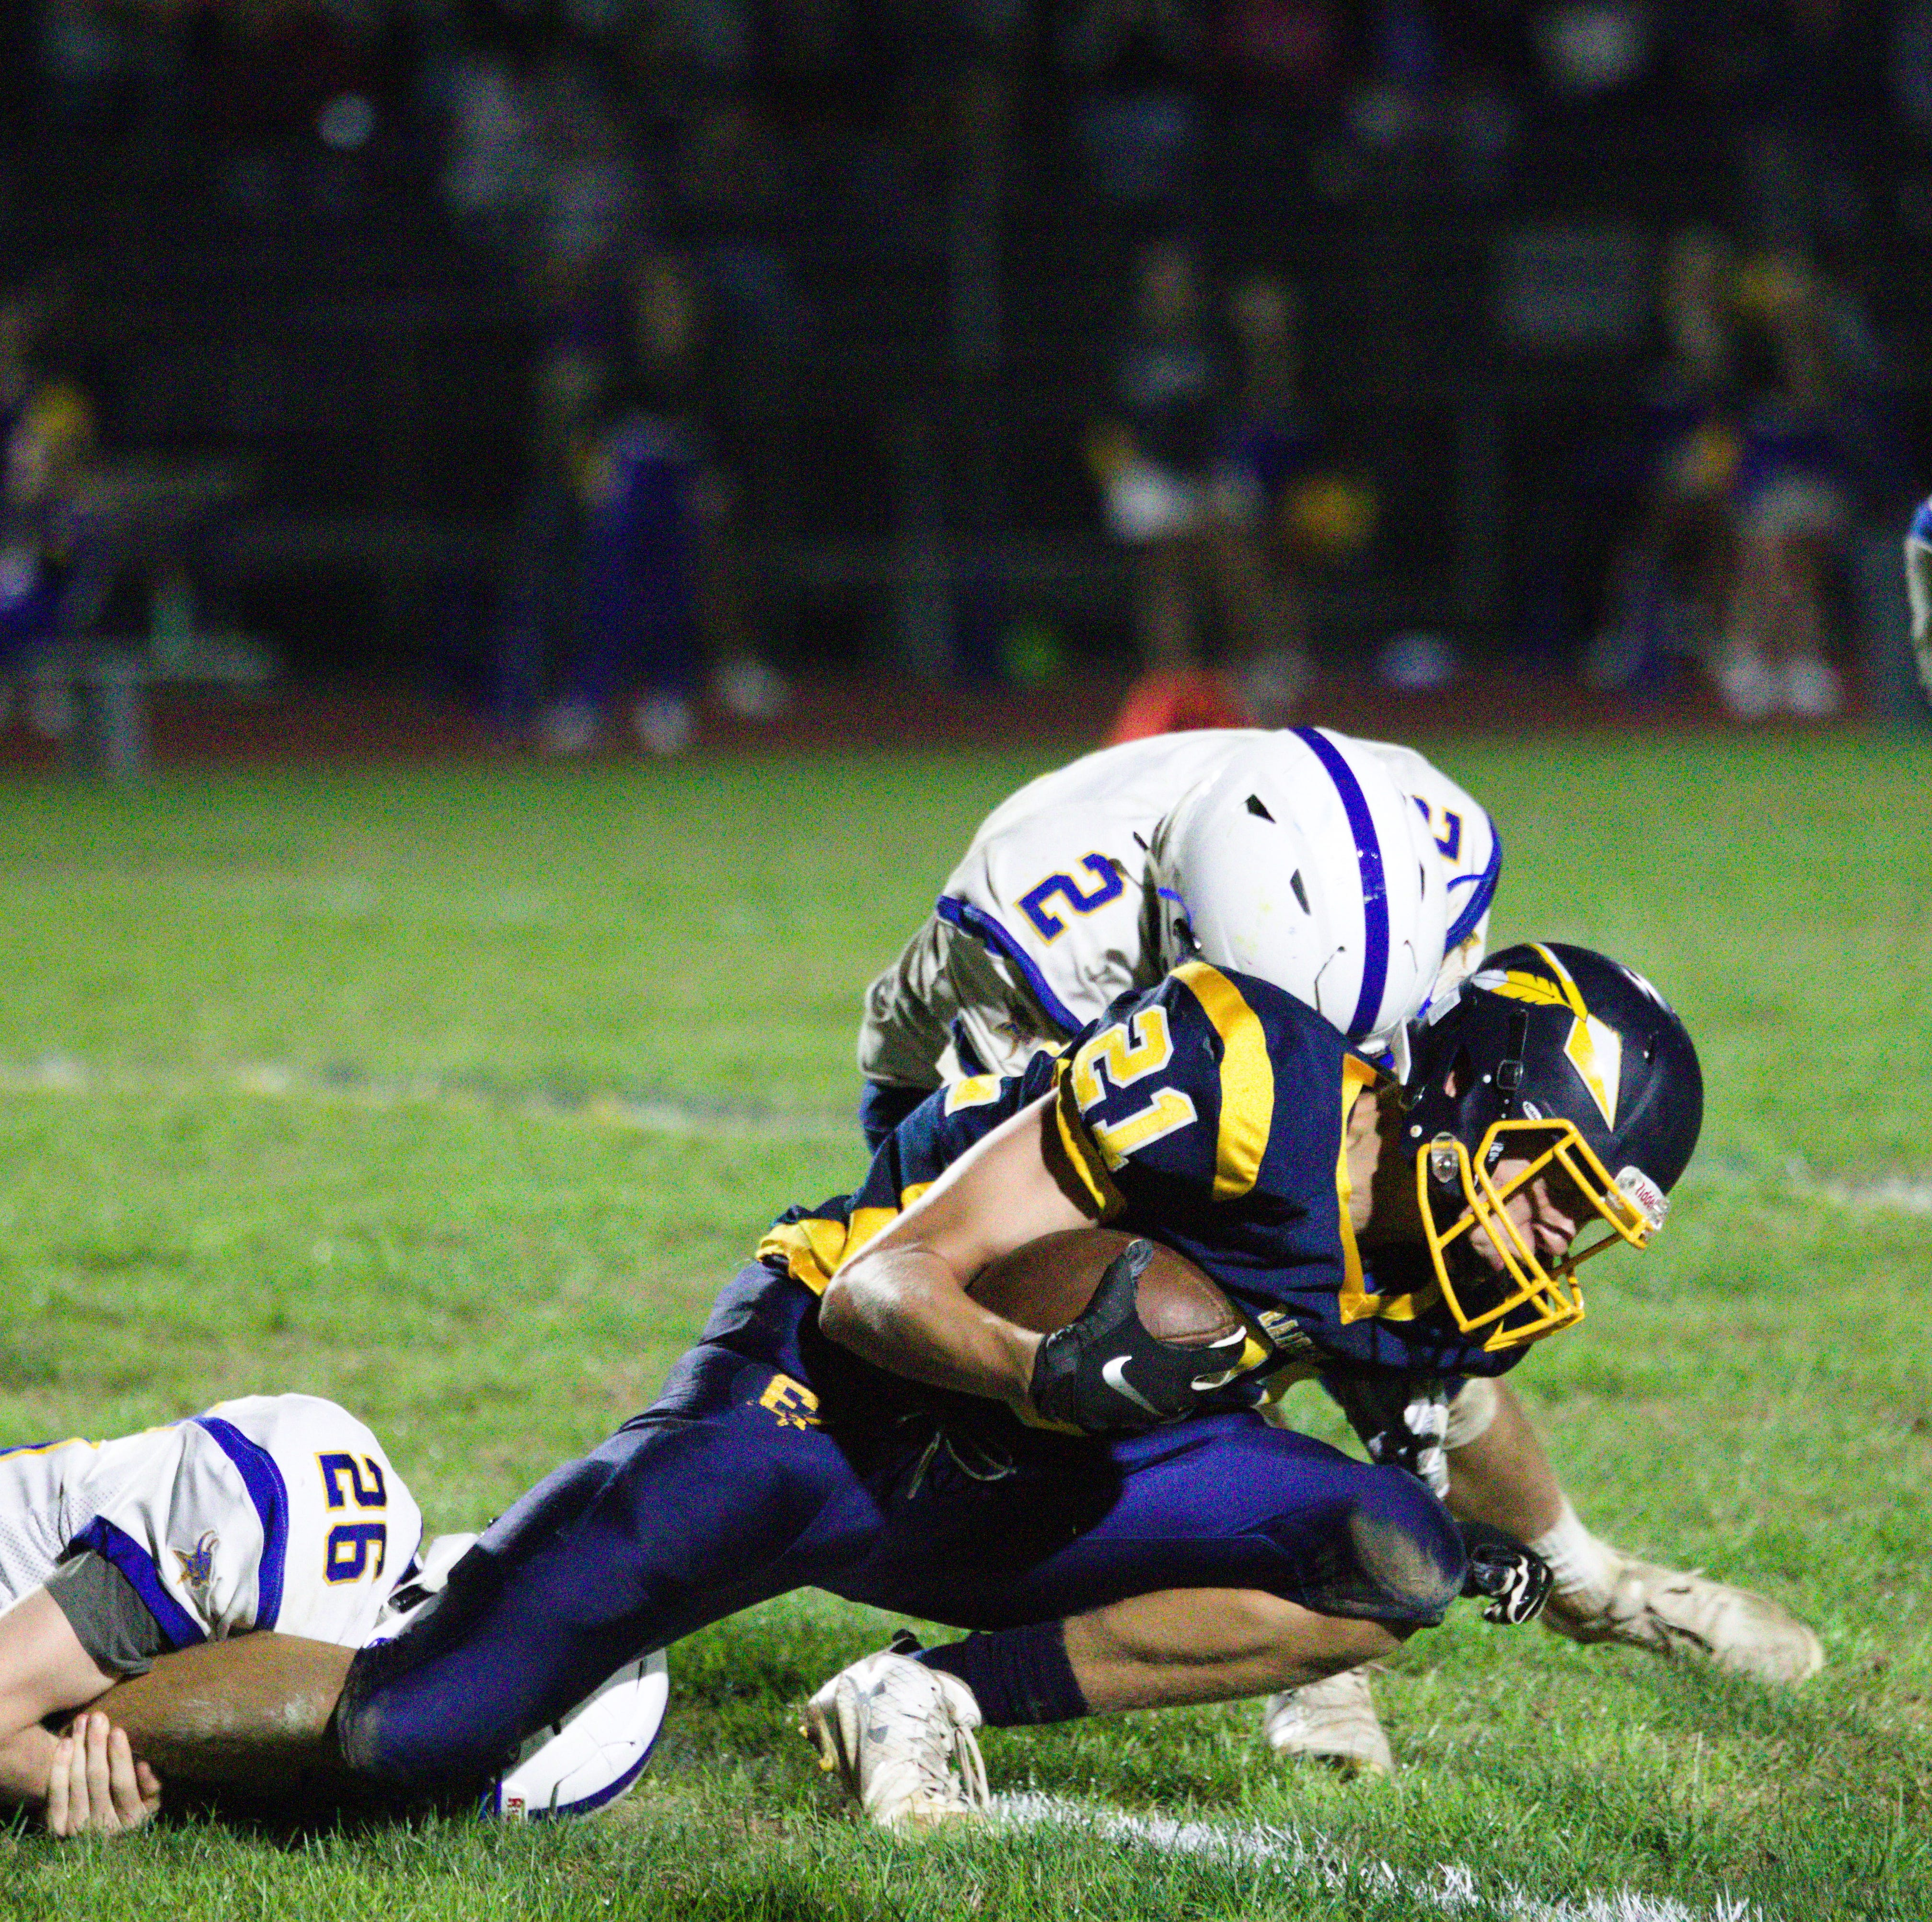 Much at stake as Elco and Annville-Cleona renew their football rivalry